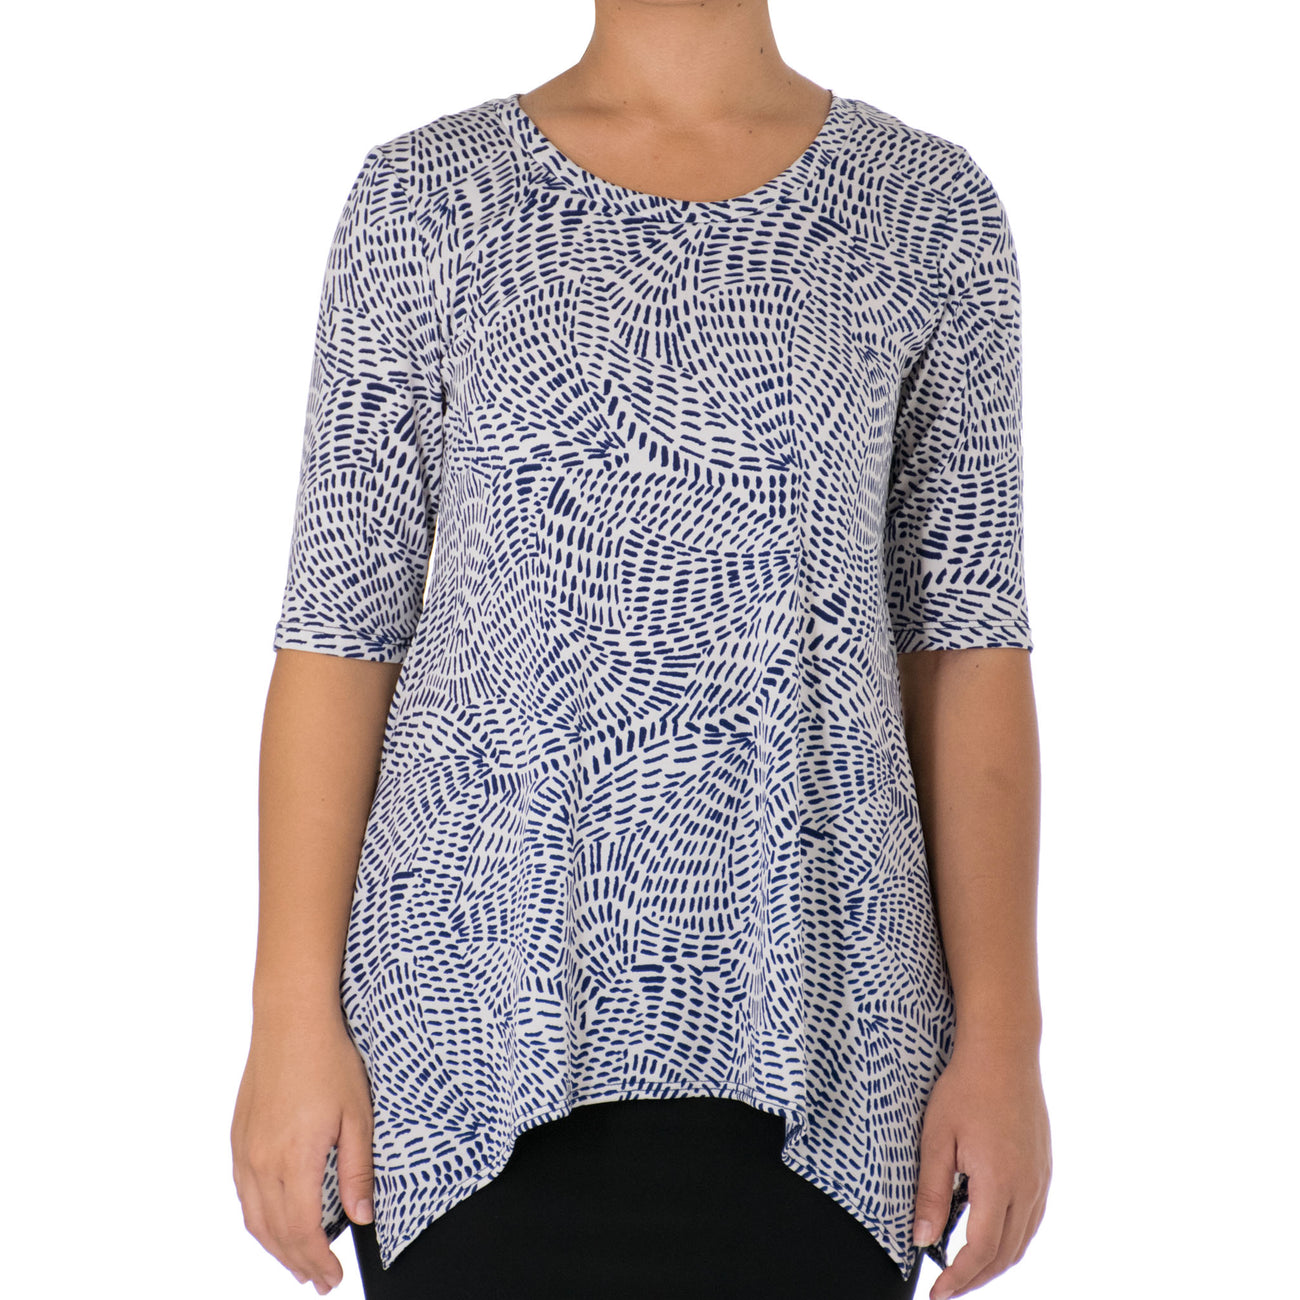 MAKANI ASYMMETRICAL KNIT TUNIC 1/2 SLEEVE